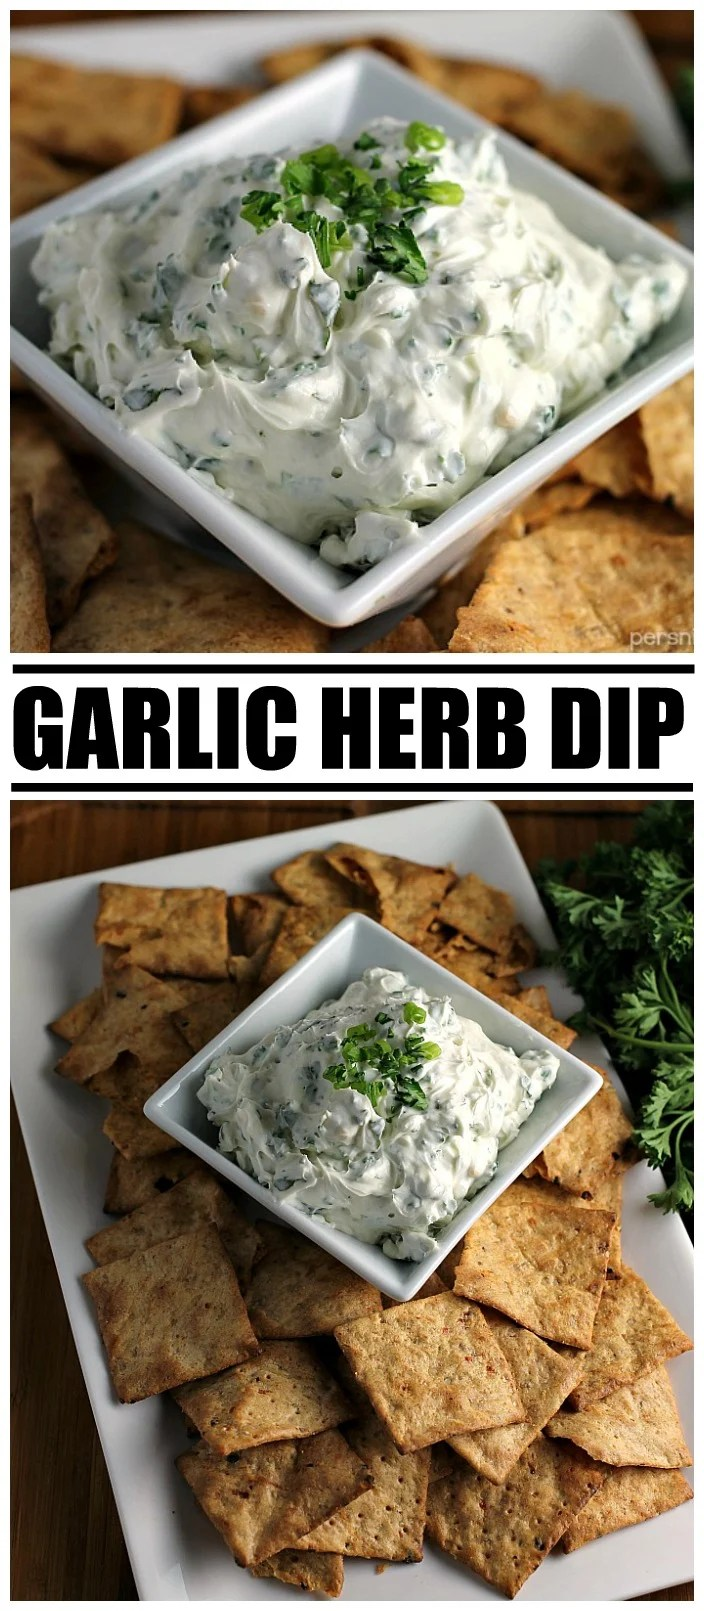 Garlic Herb Dip has a cream cheese base filled with fresh herbs. Super easy and paired with Van's Foods Crackers makes the perfect snack for your next party. | Persnickety Plates ad